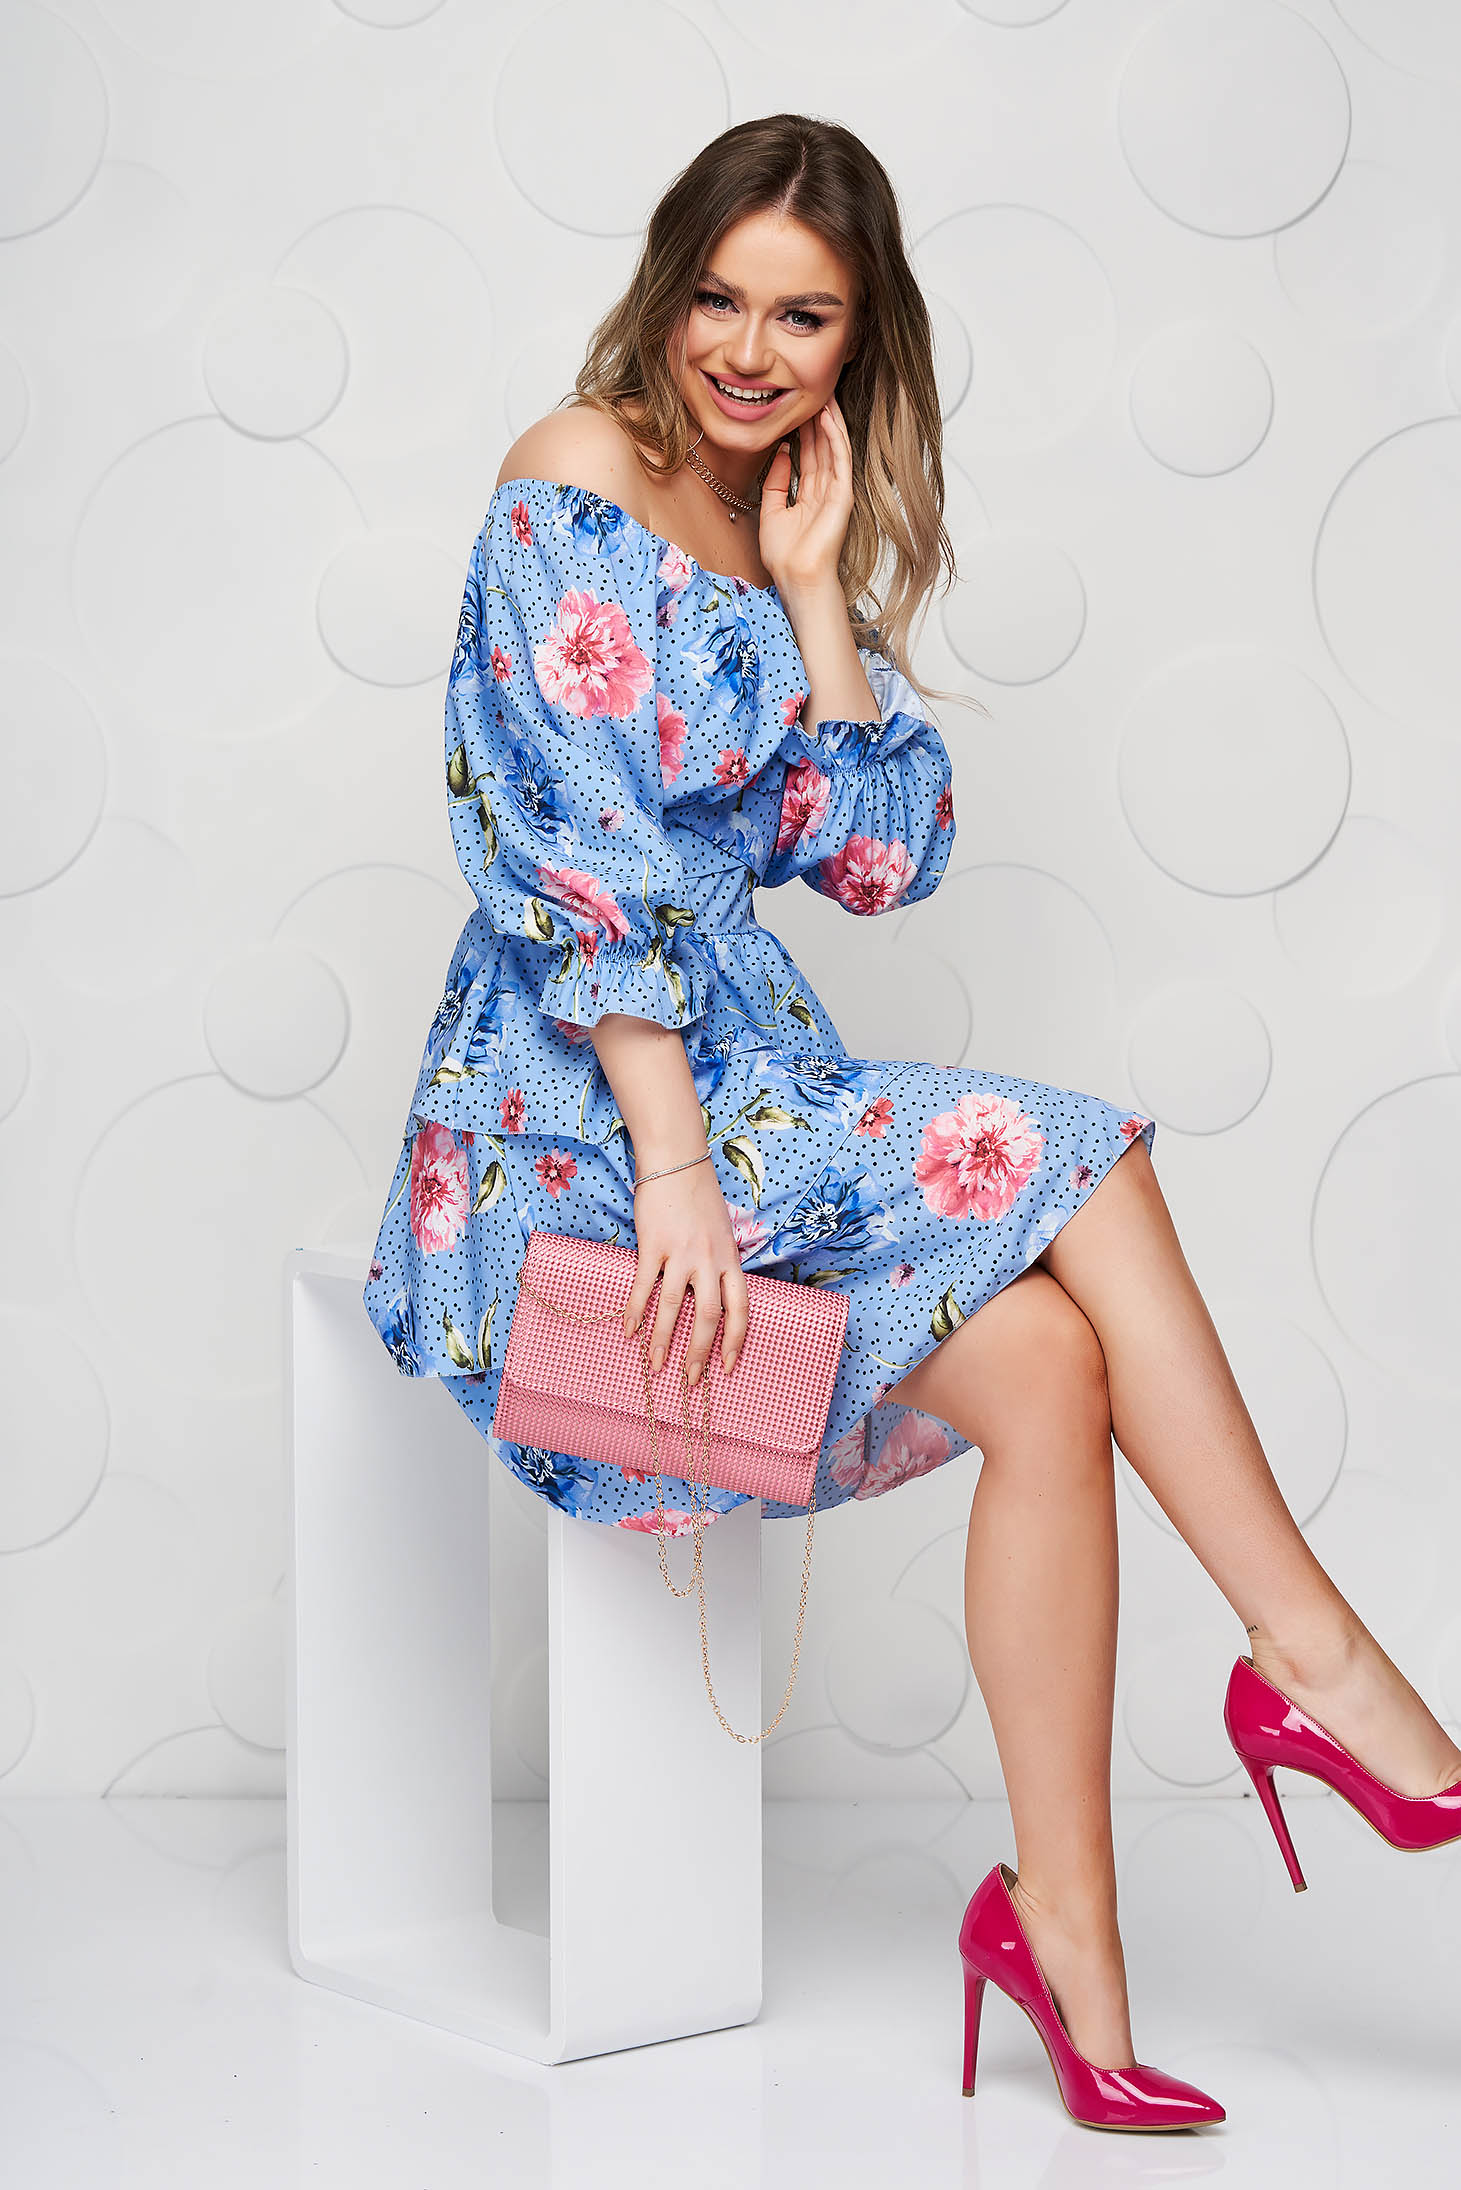 Blue dress airy fabric short cut on the shoulders with floral print dots print